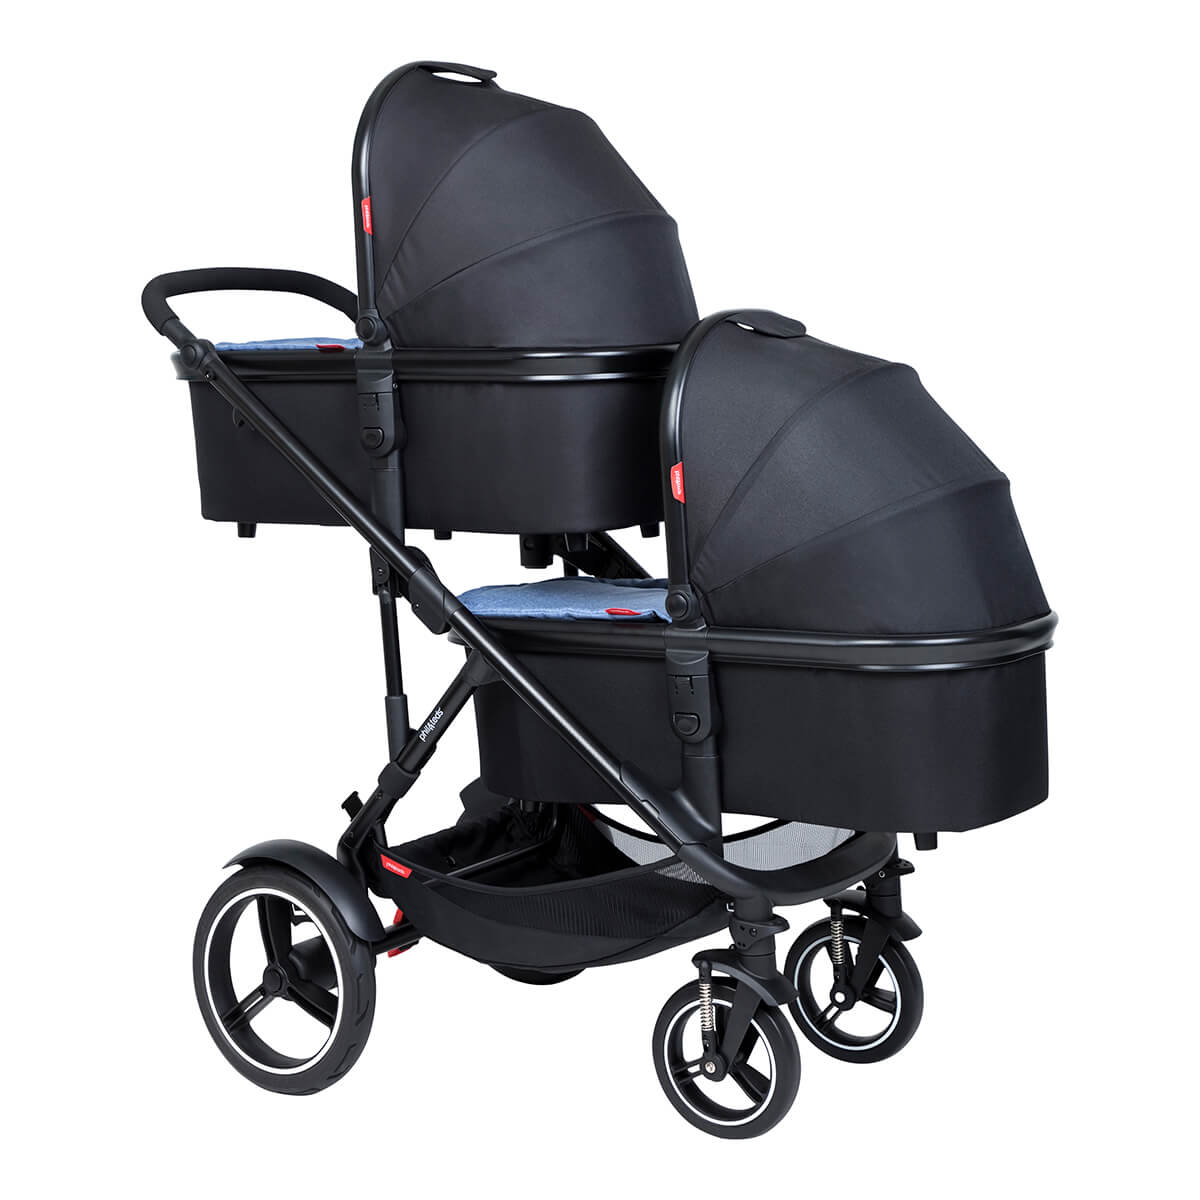 https://cdn.accentuate.io/4509529276504/19272668414040/philteds-voyager-inline-buggy-with-double-snug-carrycots-v1626484781912.jpg?1200x1200